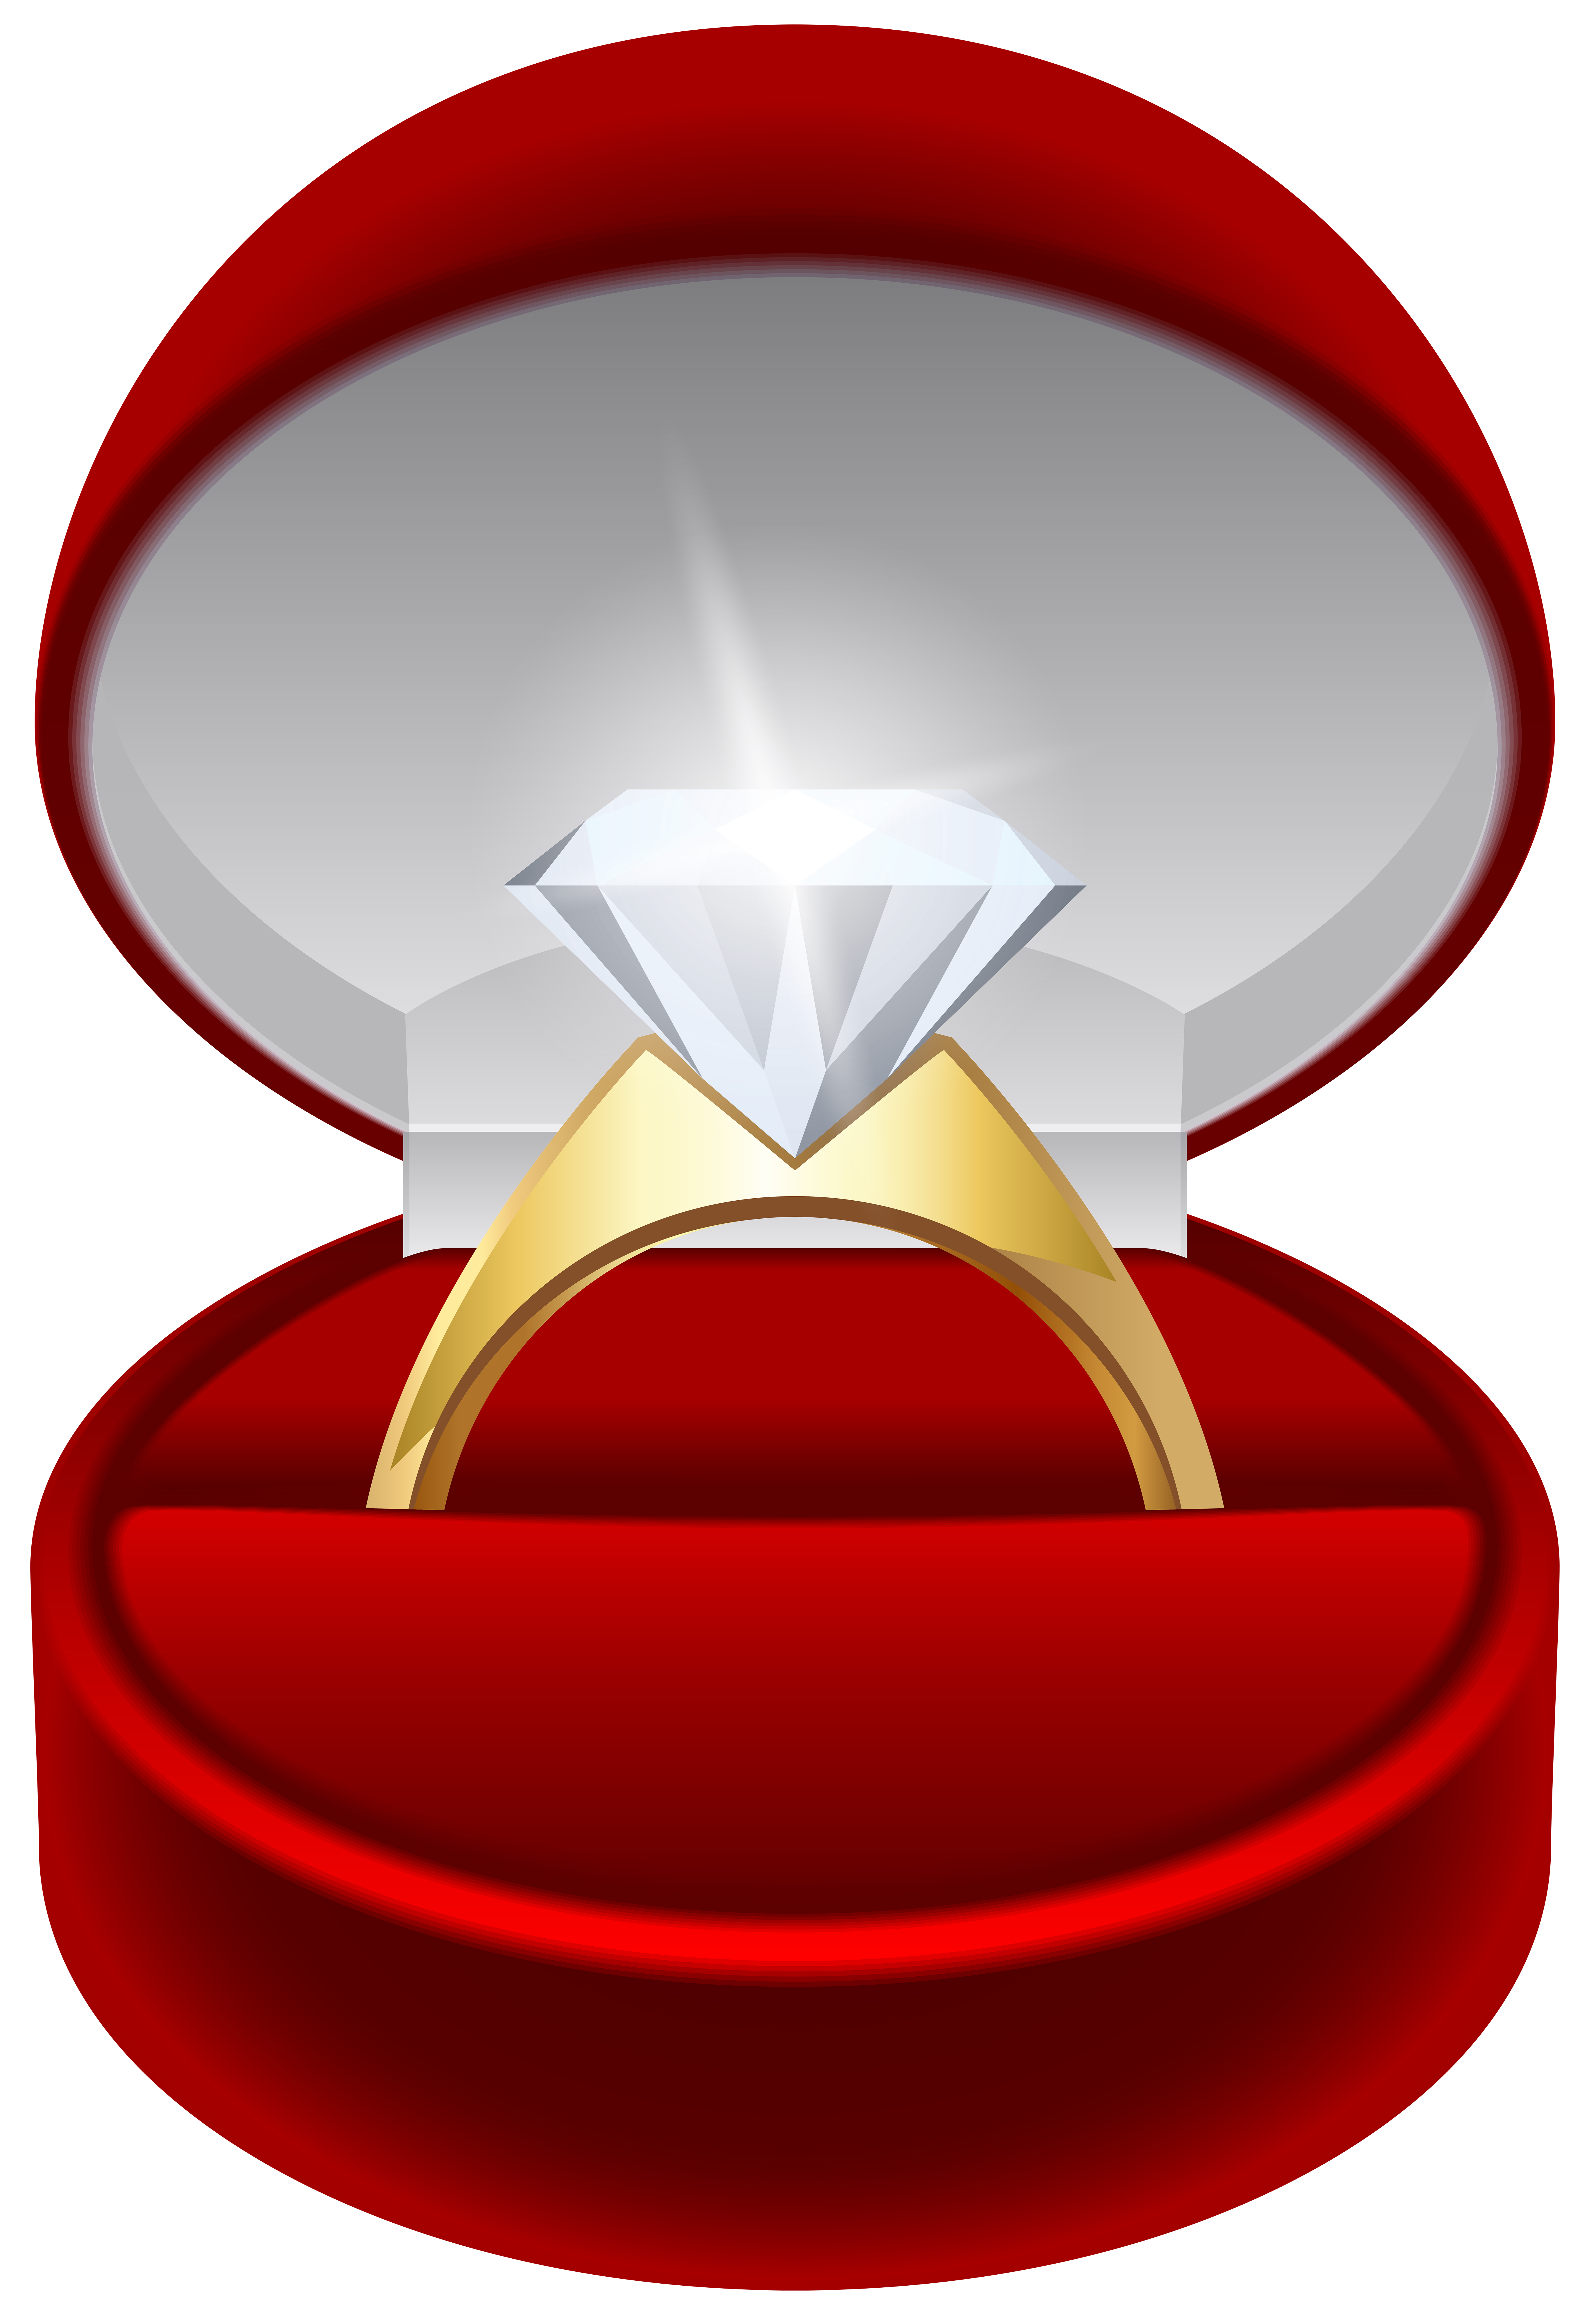 engagement ring clipart images - photo #29